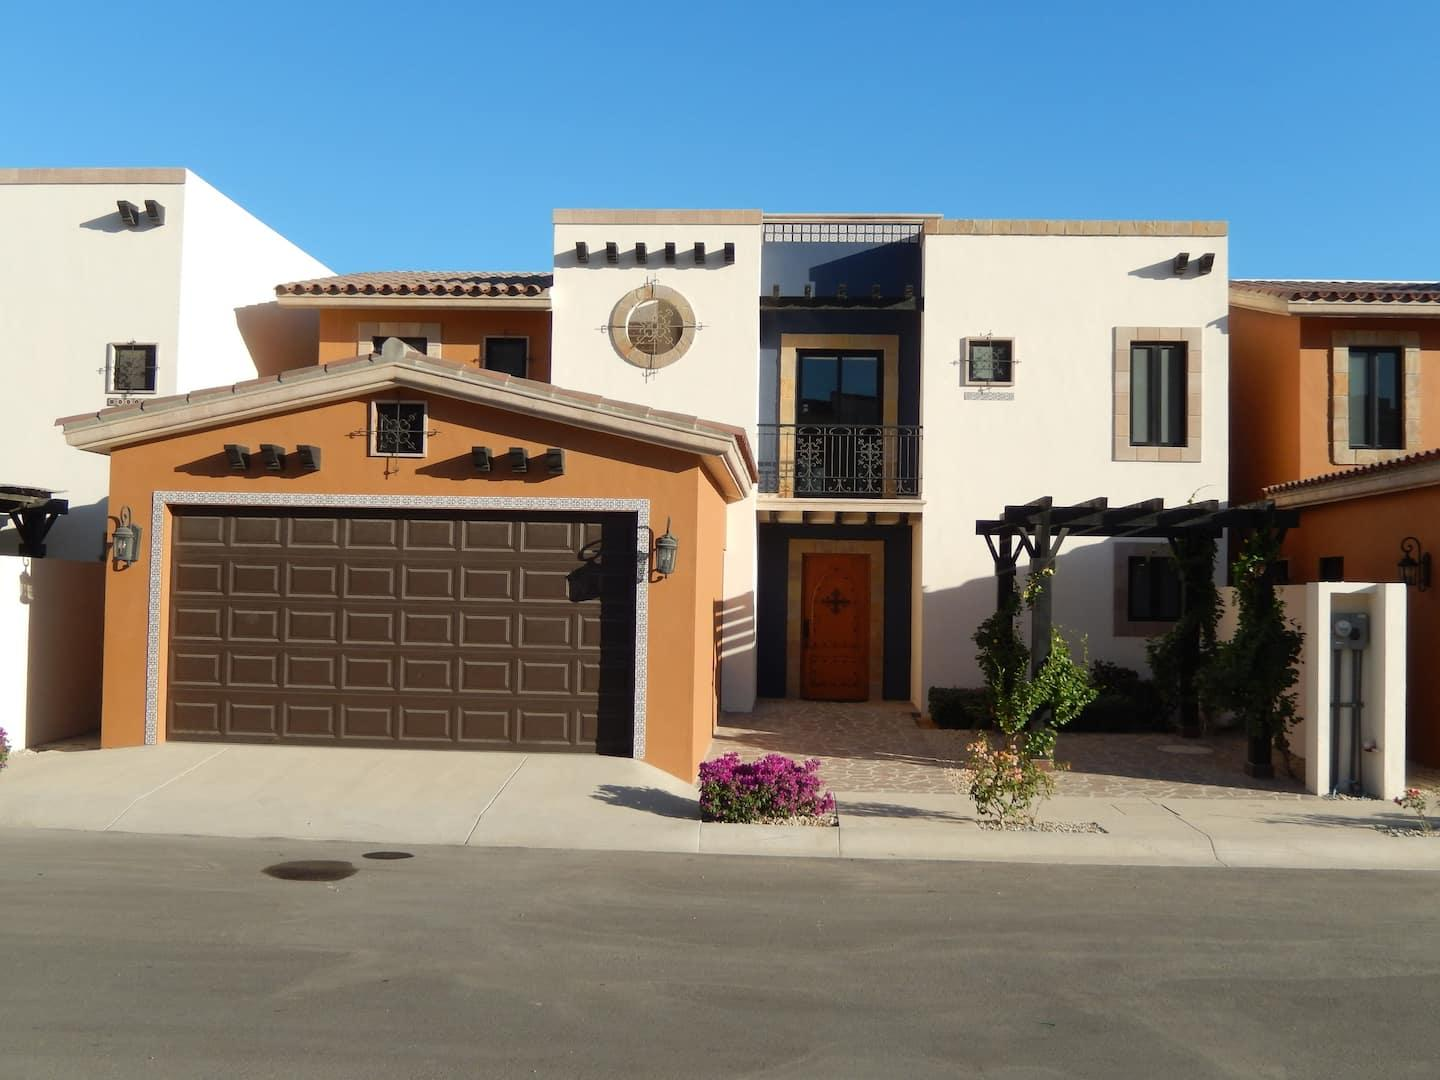 Very Rare Zuni Plan in Copala.  Front row with fabulous ocean views.  Enter the house and your see the spaciousness of a 20+ foot ceilings.  The house is repleat with outdoor kitchen, pool, jacuzzi, fire pit, fire place.  Tastefully decorated and ready to move in.